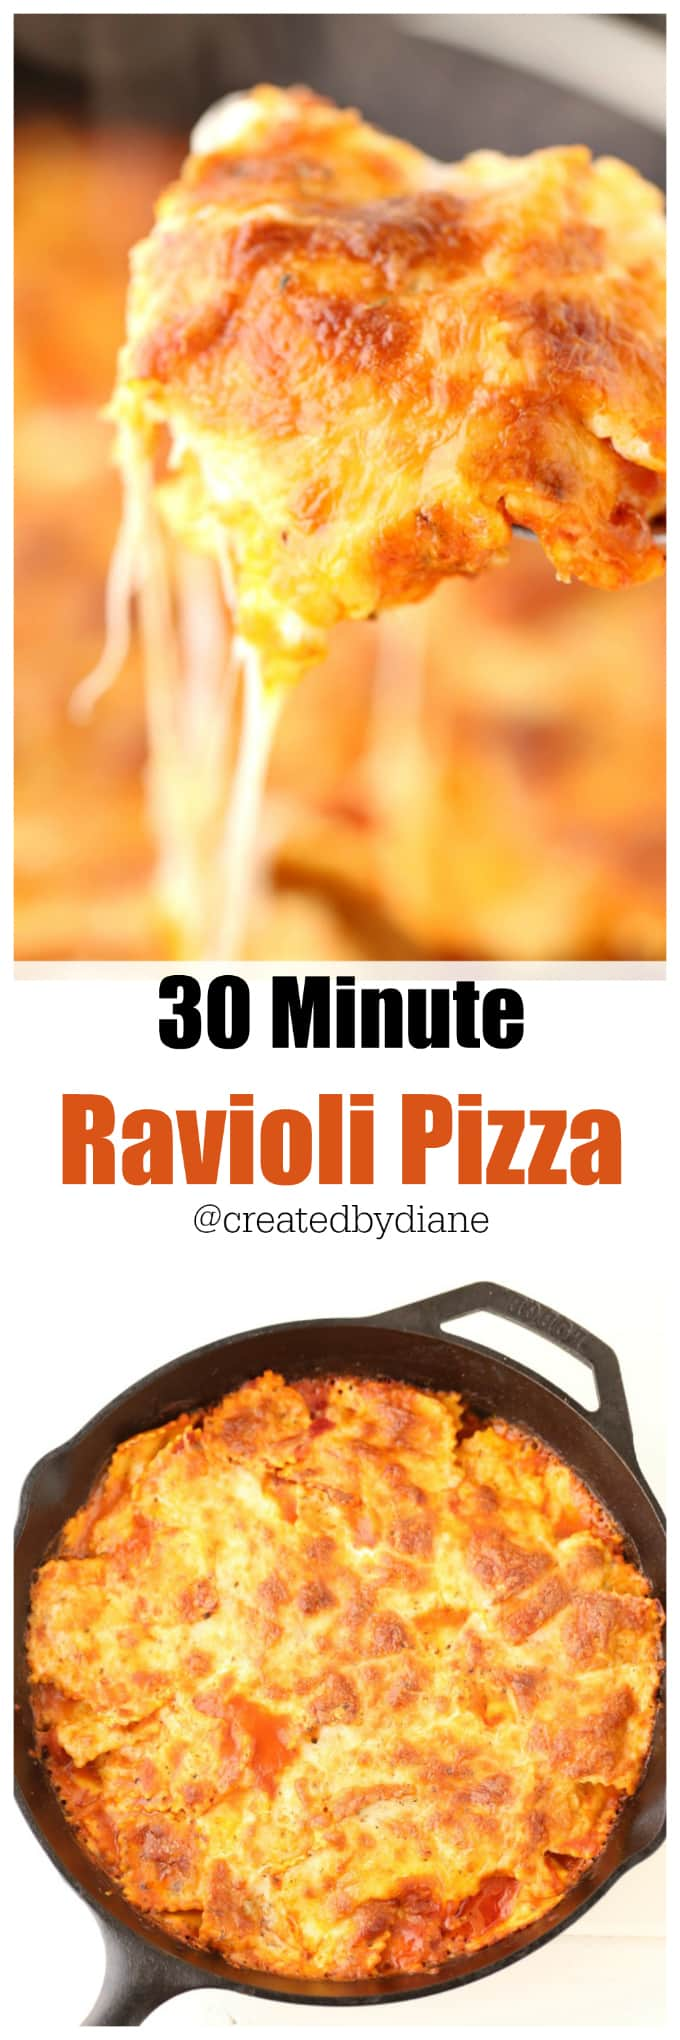 30-minute-ravioli-pizza-recipe-from-createdbydiane